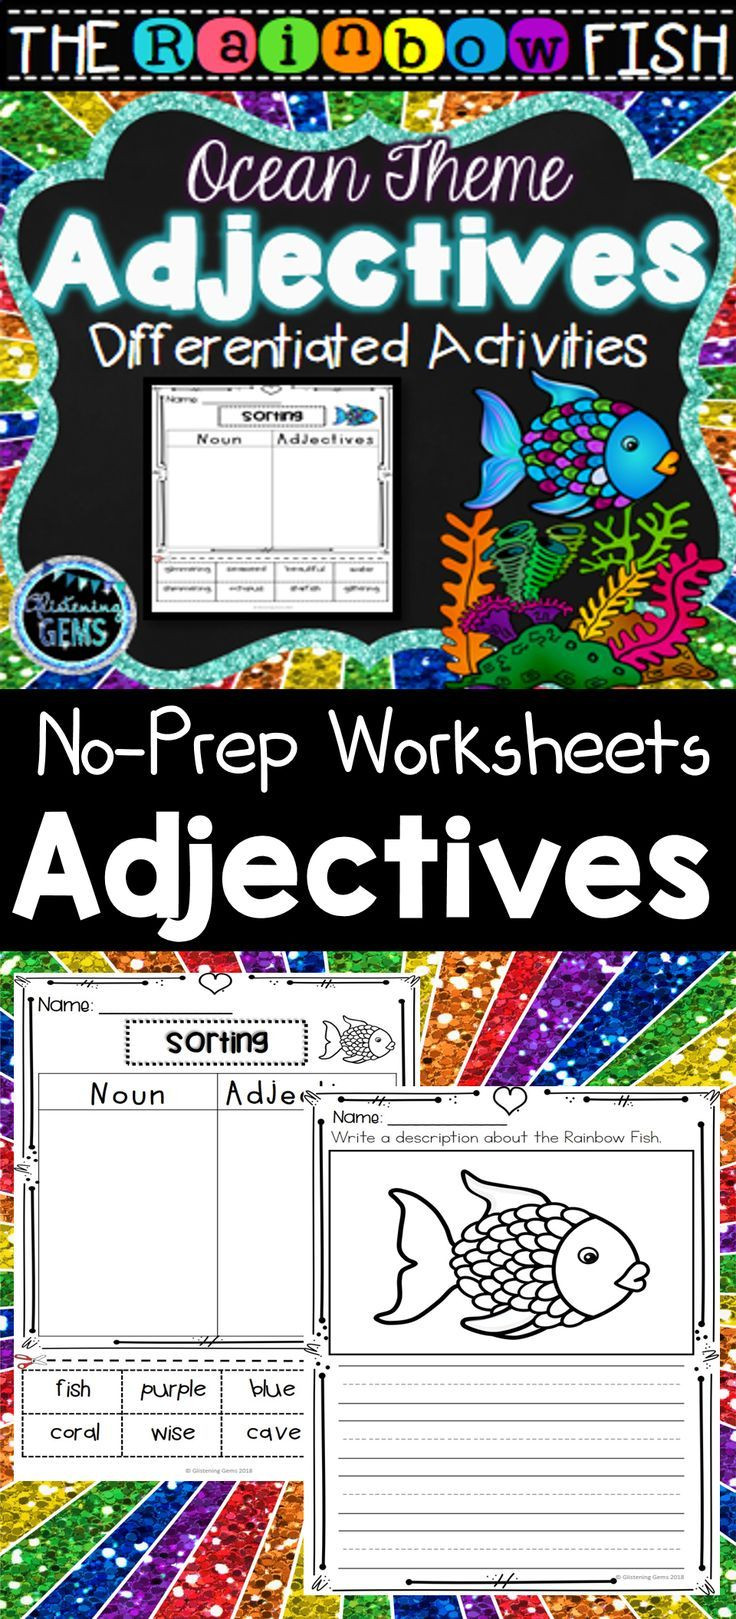 Rainbow Fish Printable Worksheets the Rainbow Fish Adjective Worksheets & Printables Color